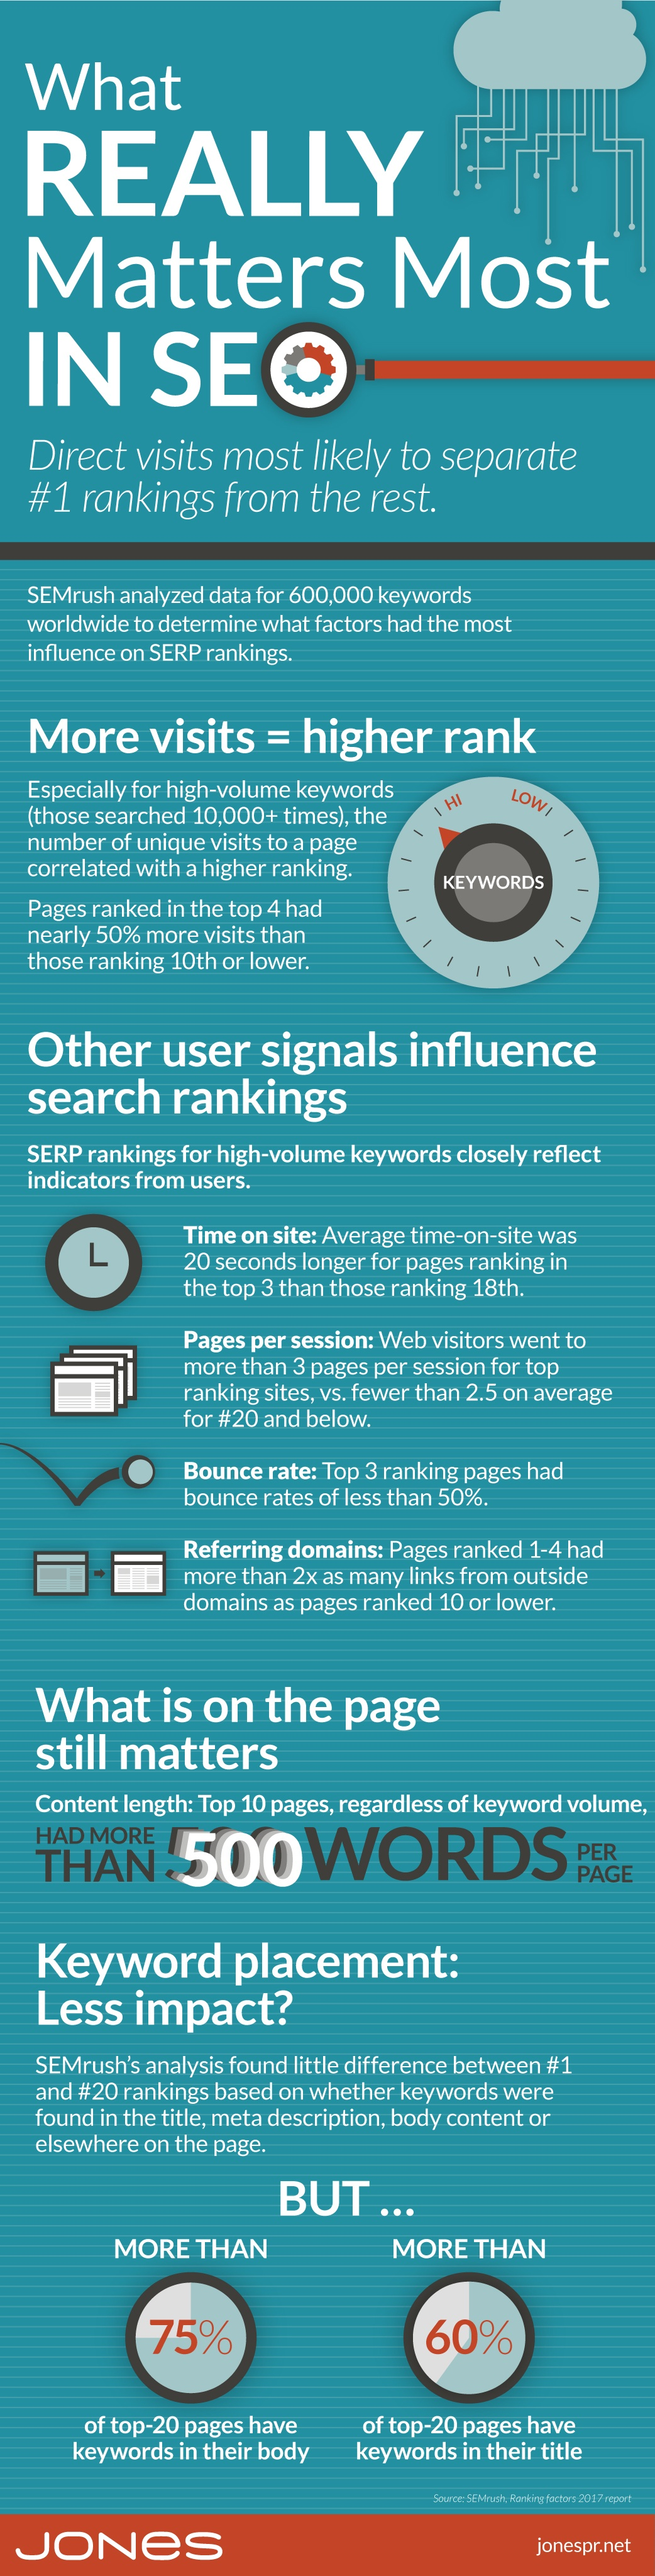 What Matters Most in Search Rankings? (SEO infographic)